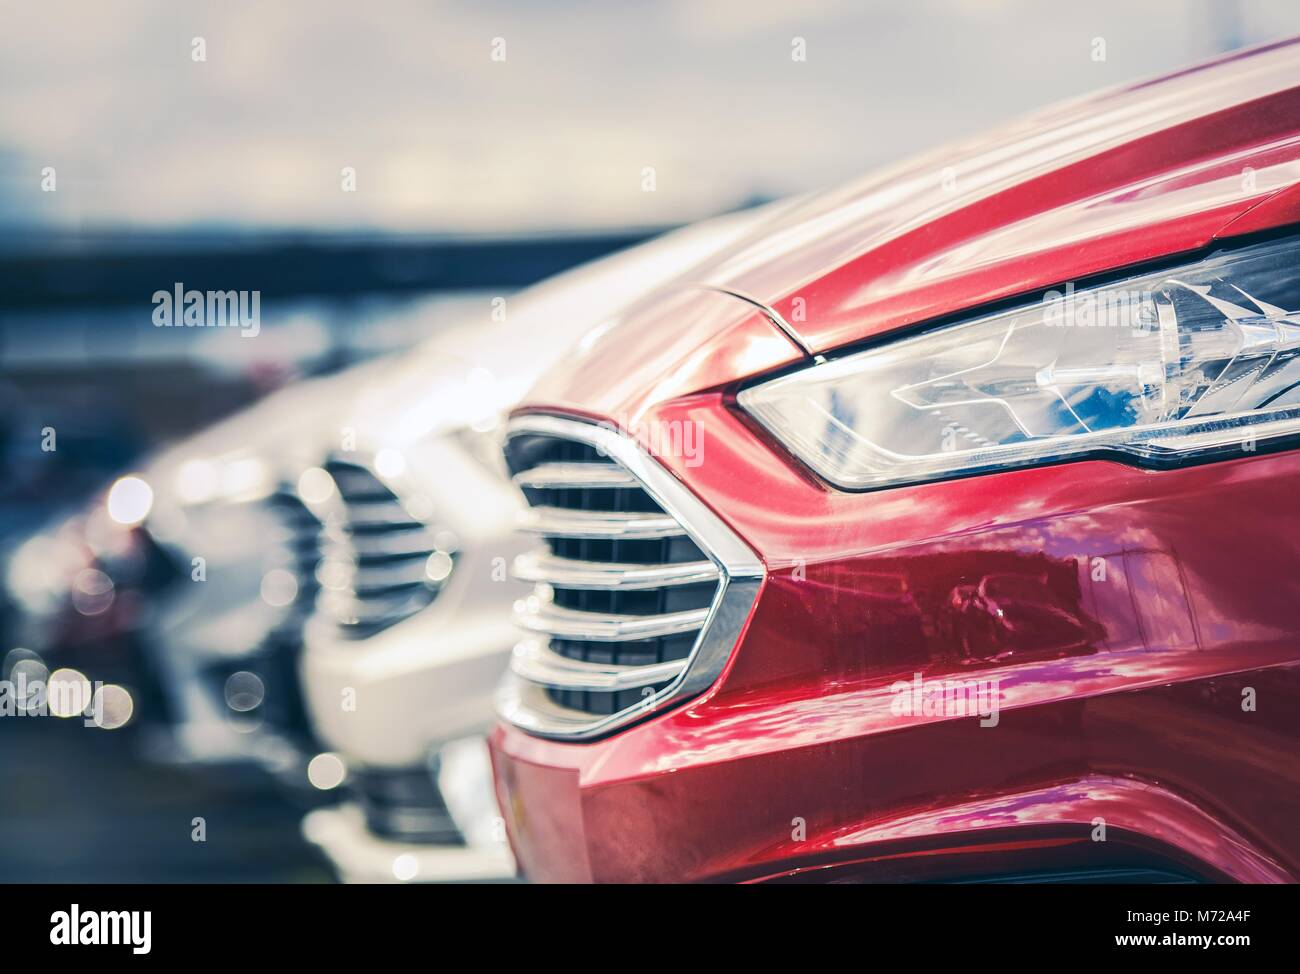 Pre owned car stock photos pre owned car stock images for Pre owned motor cars